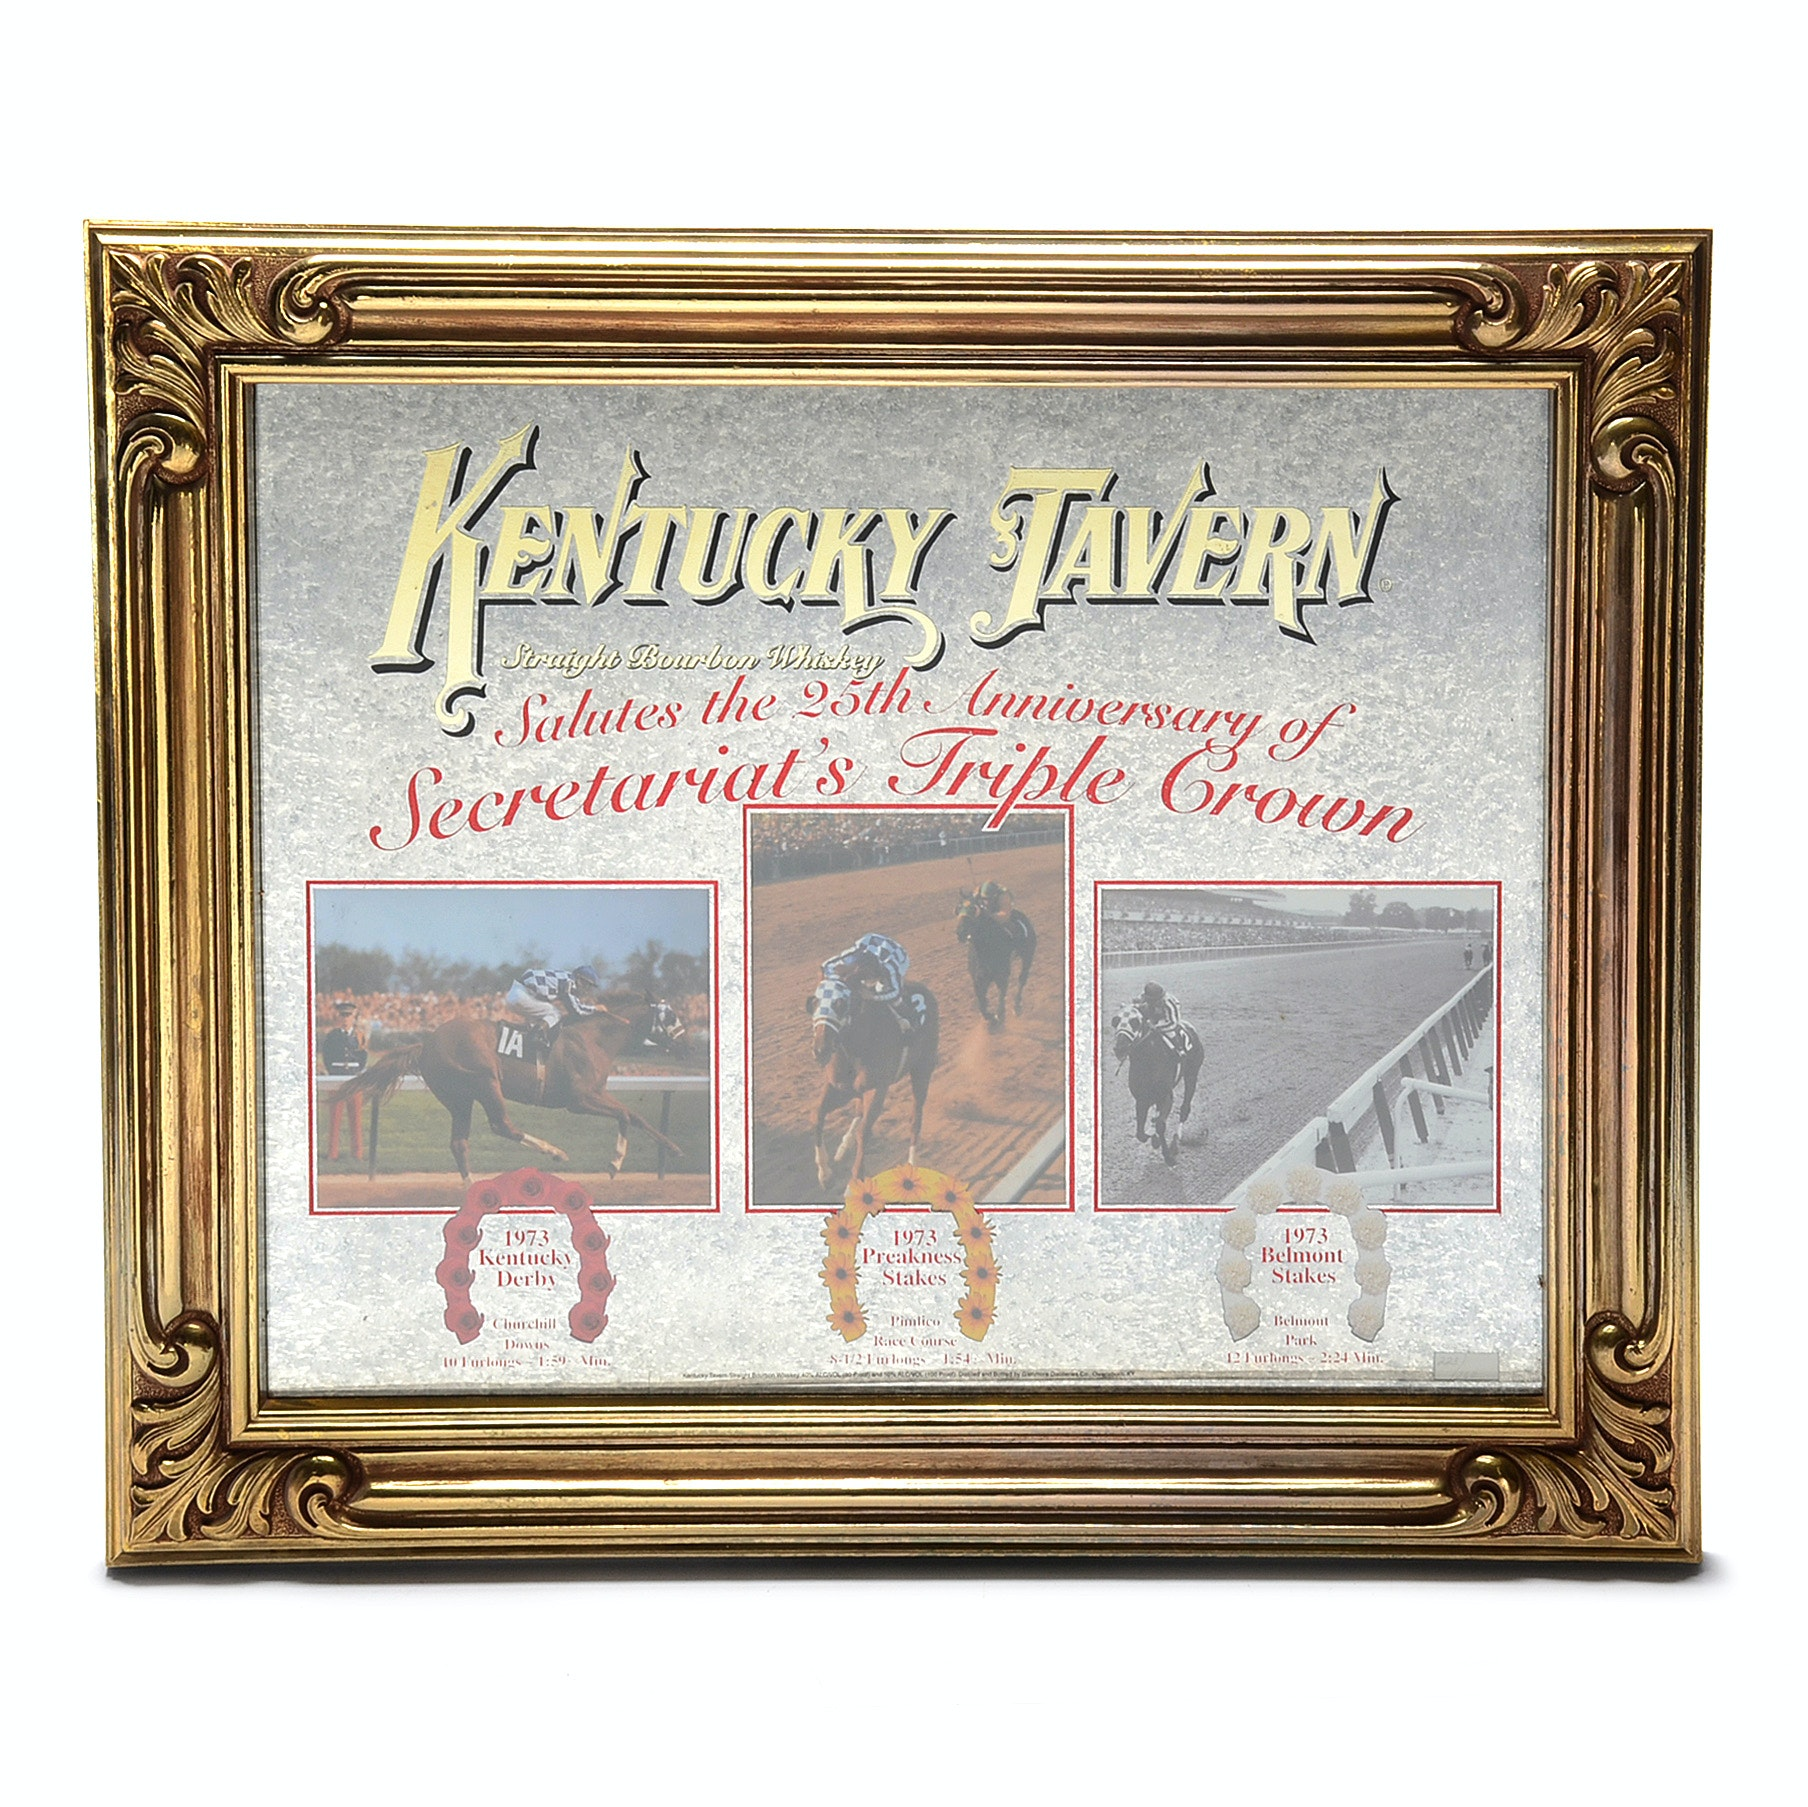 Limited Edition Advertising Sign for Kentucky Tavern featuring Secretariat